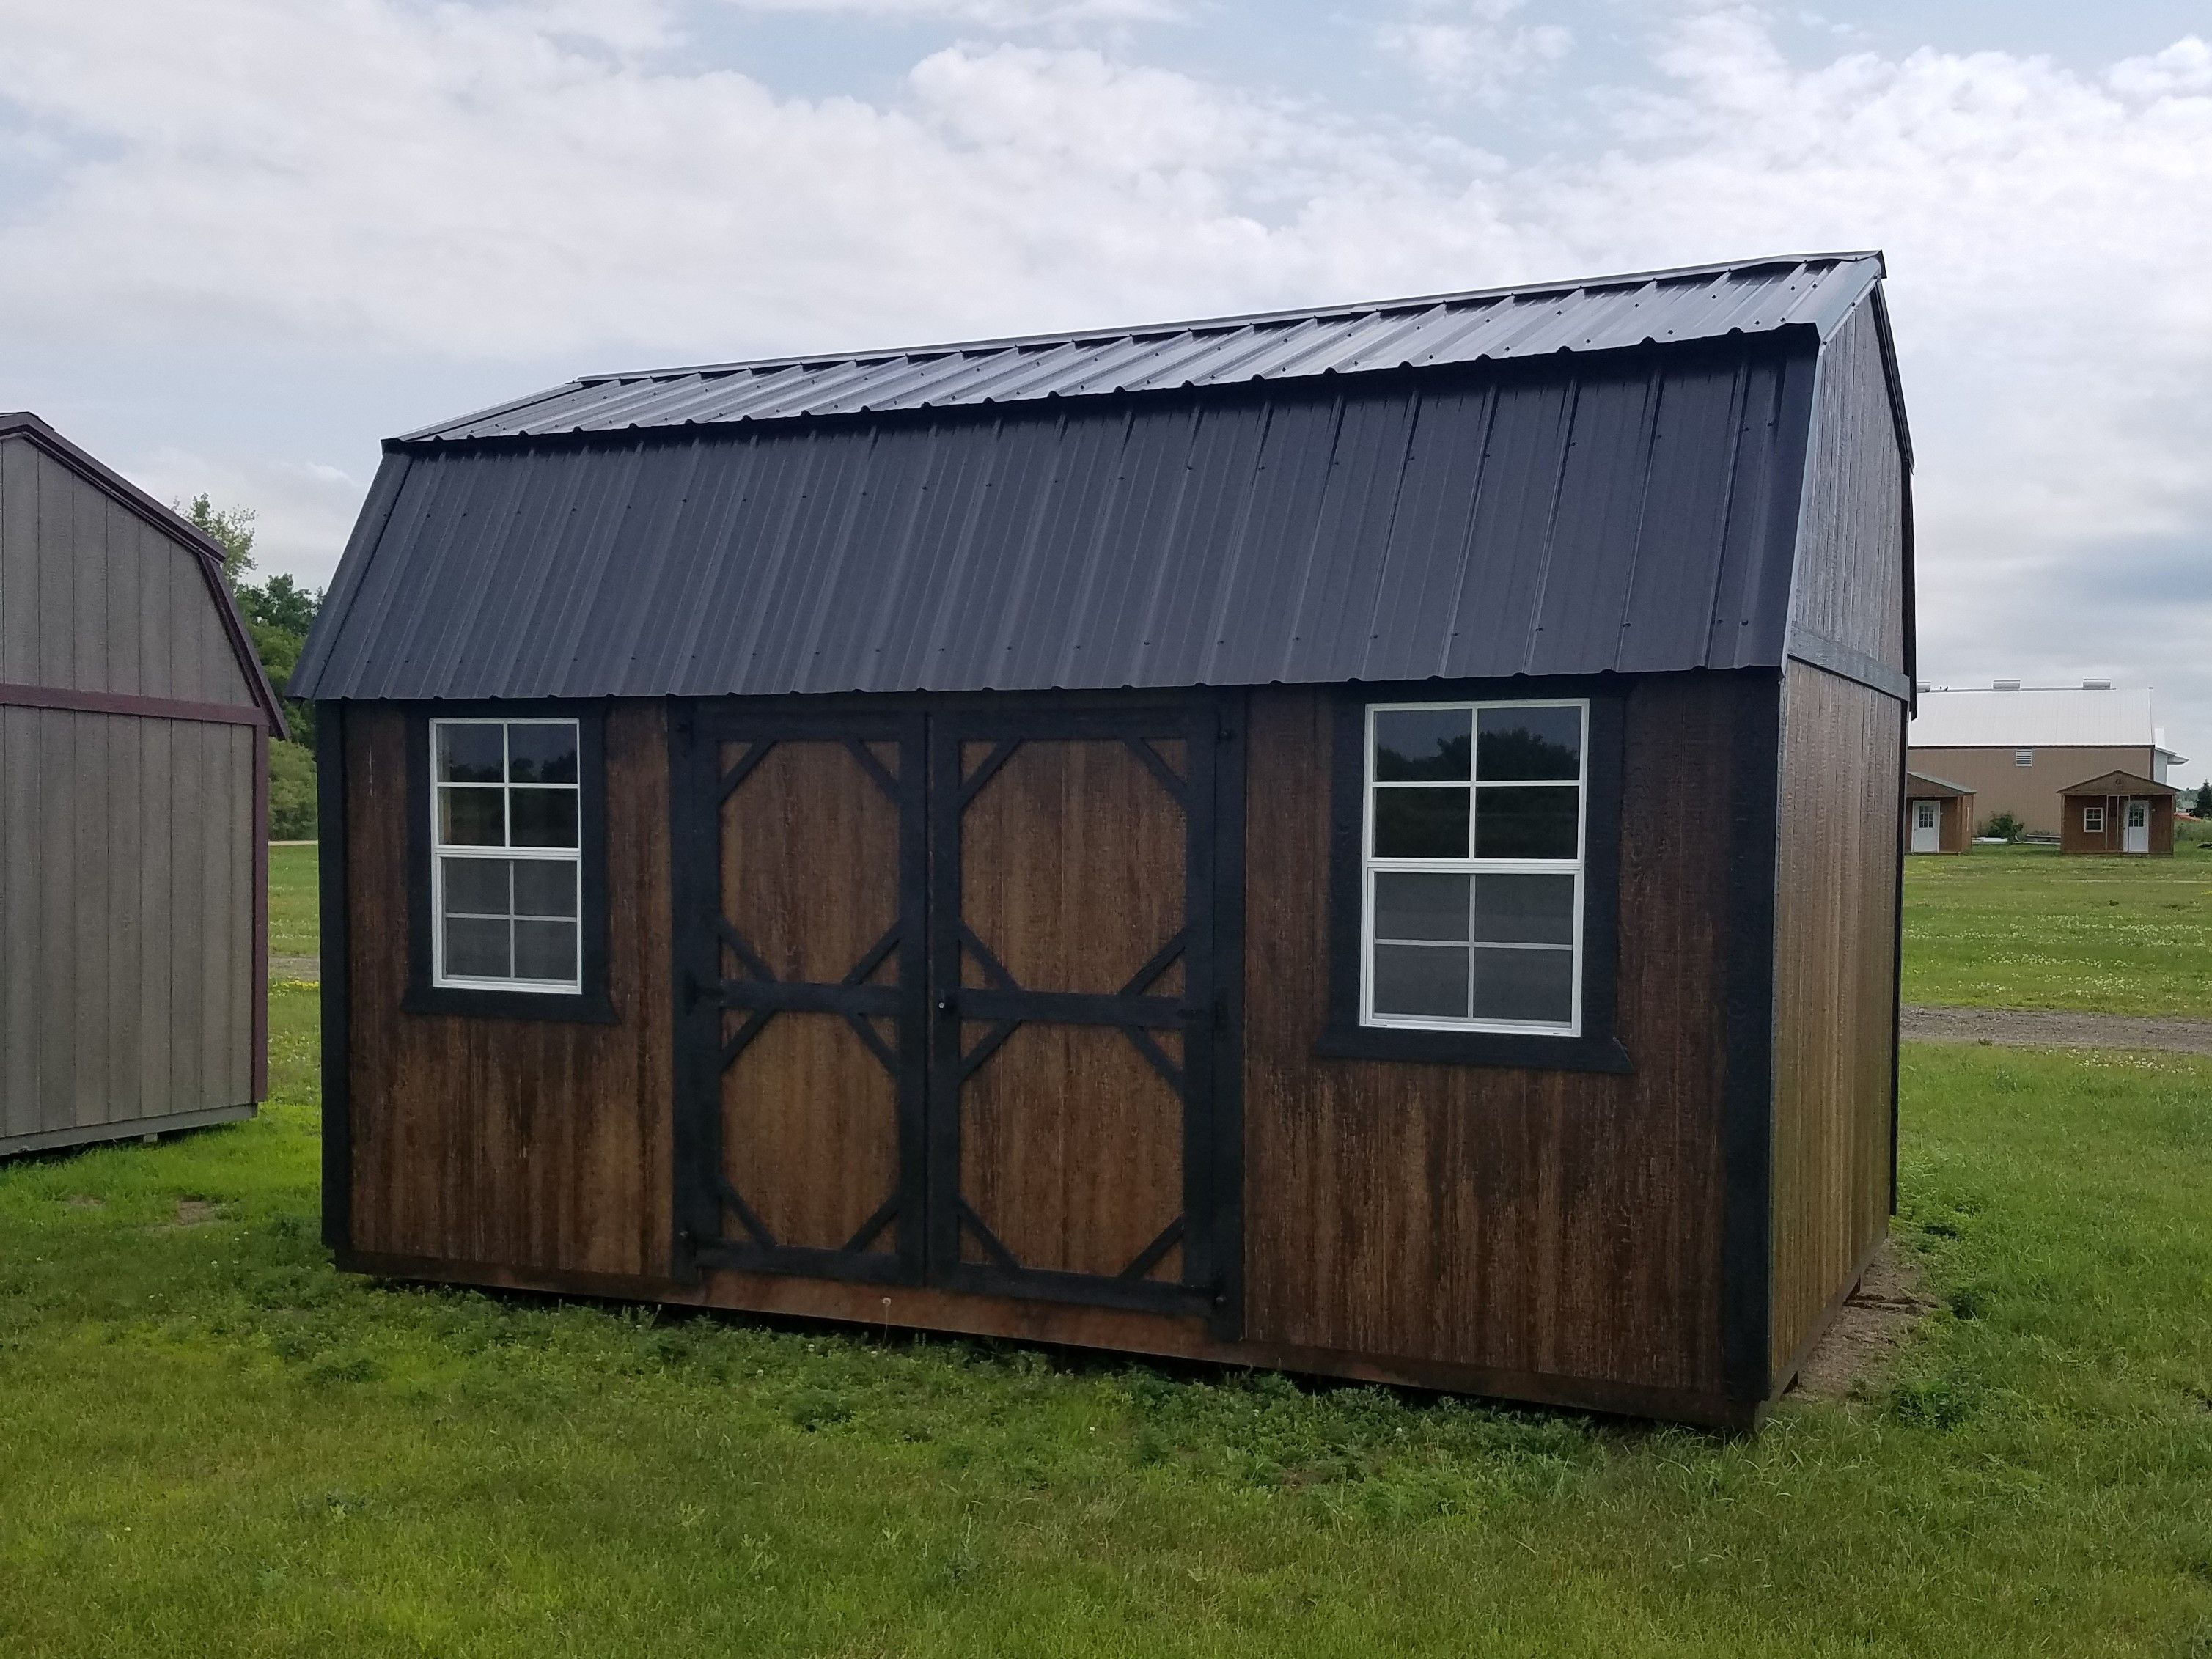 10x16 Side Lofted Barn Built By Grandview Buildings Black Metal Roof Painted Trim Lp Smartside Siding Painted Hal Painted Shed Black Metal Roof Barn Loft